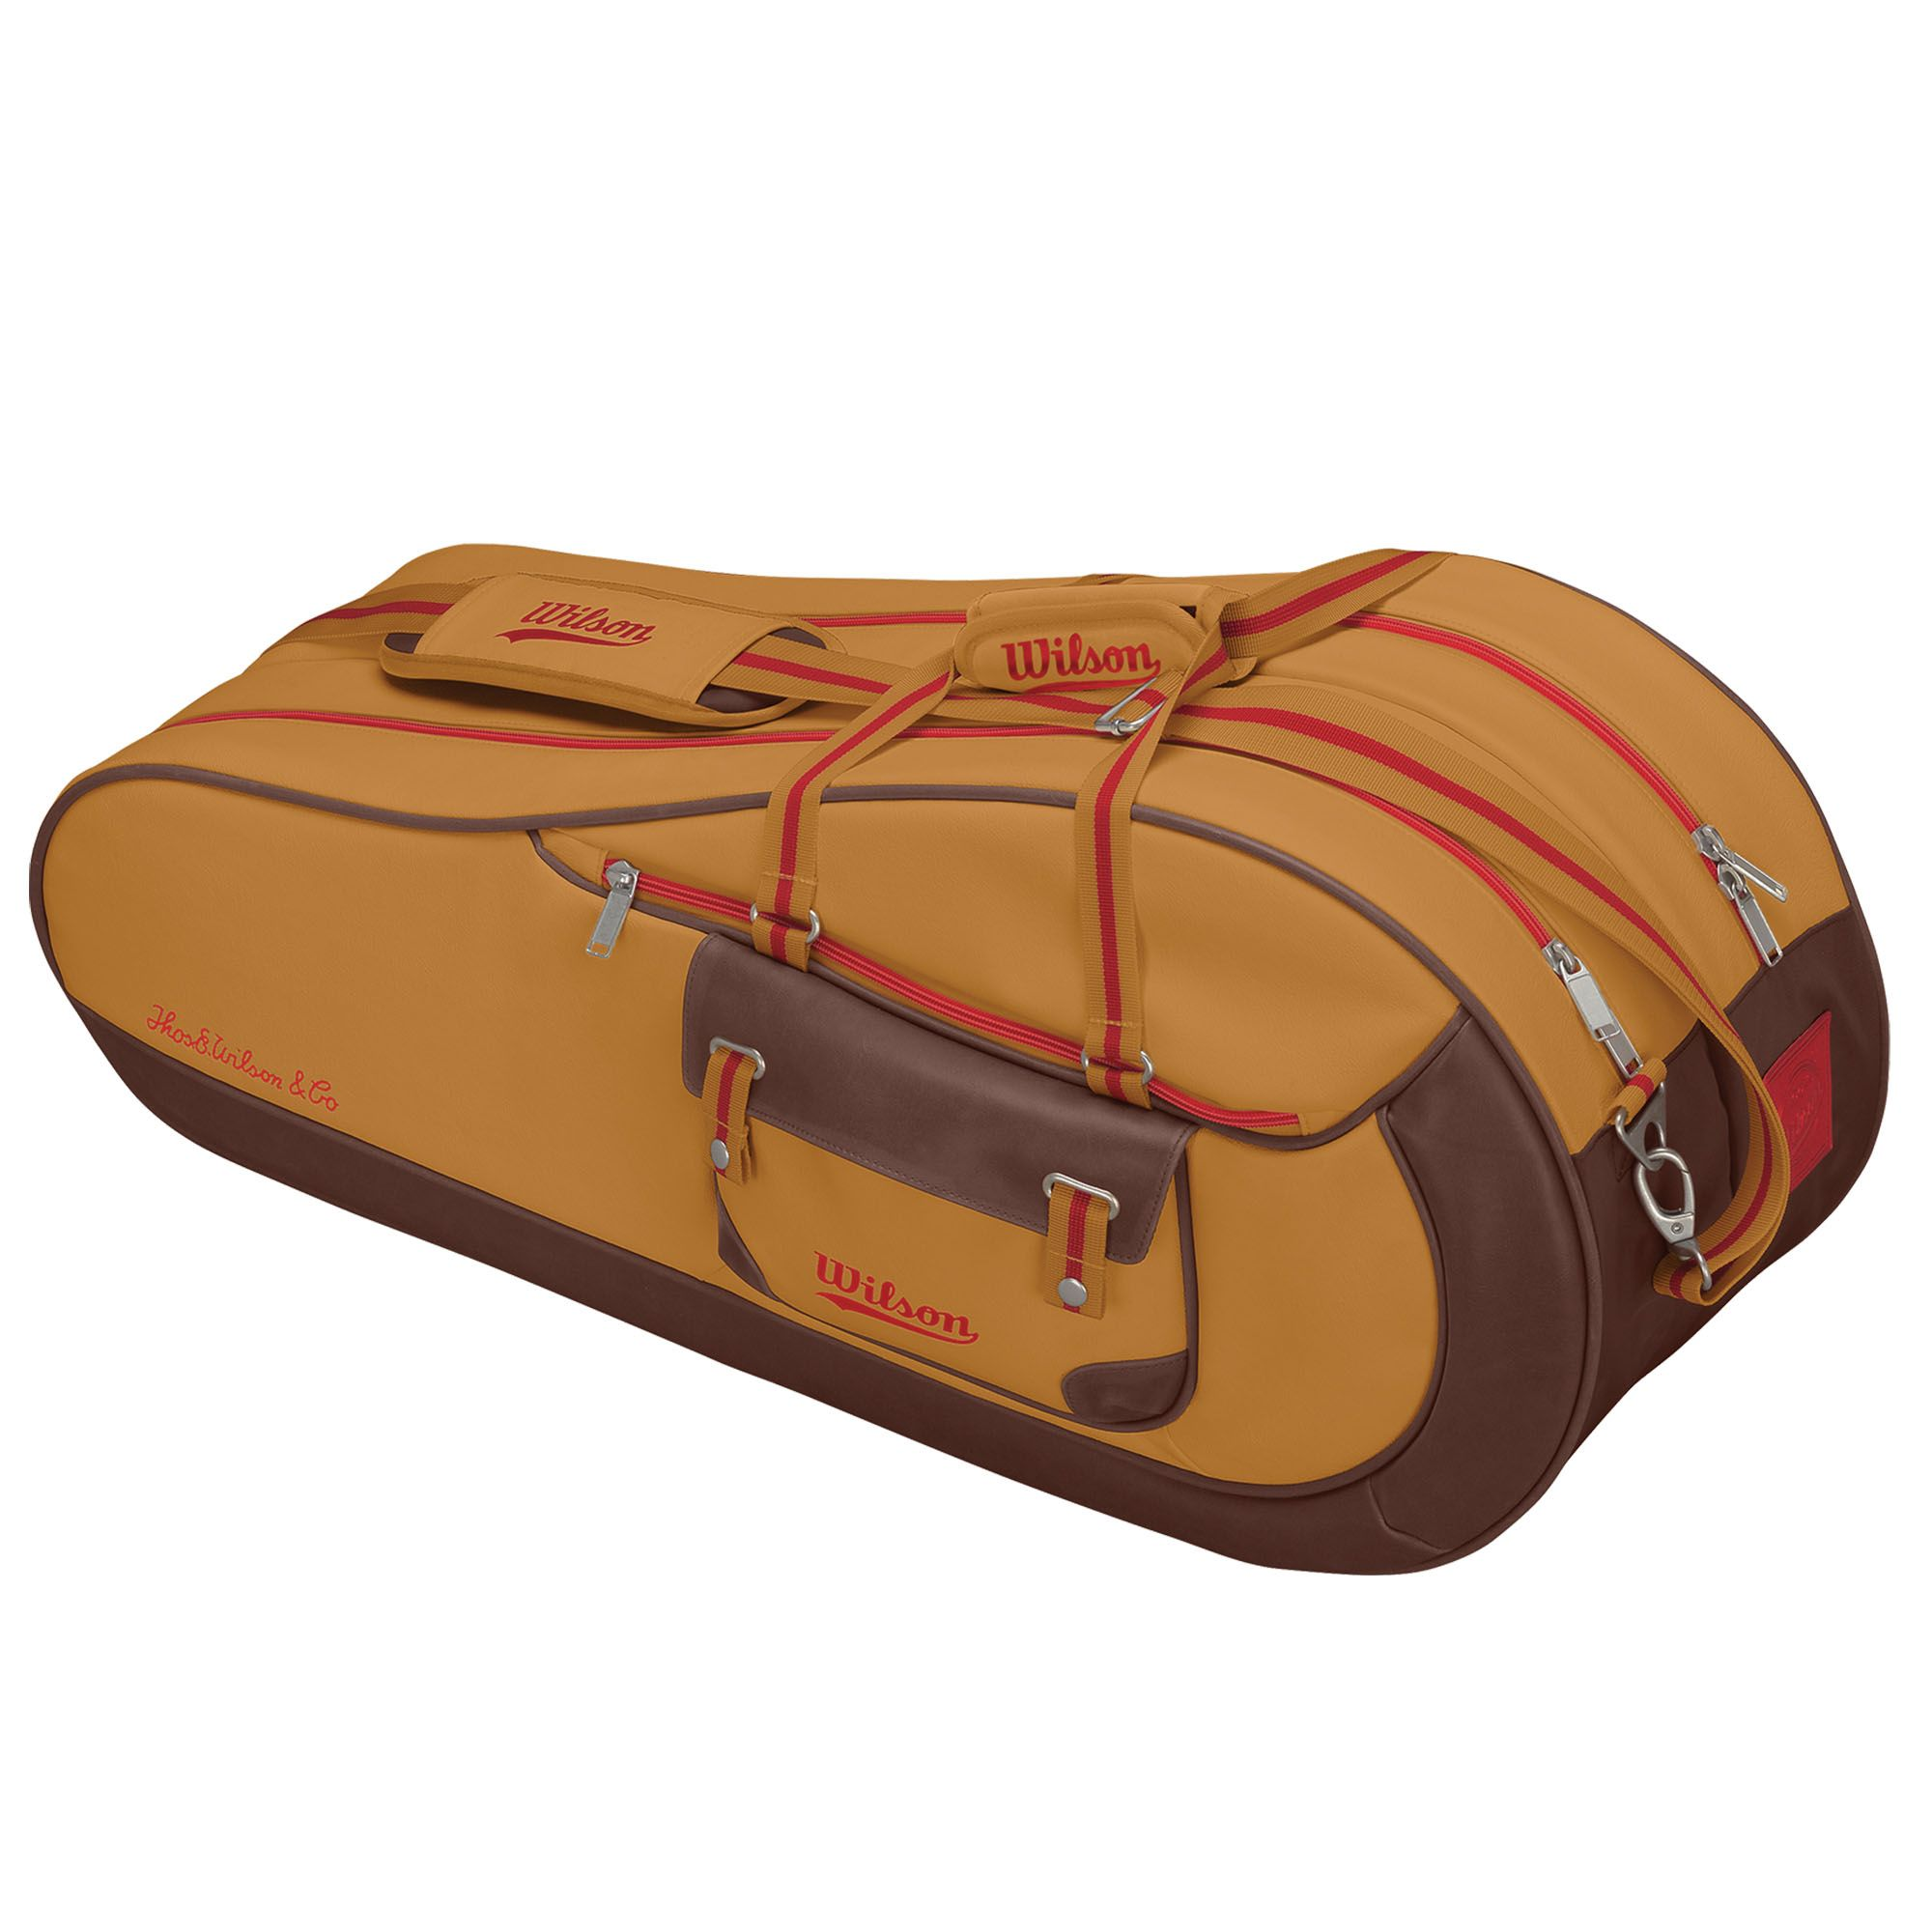 Wilson Heritage 9 Racket Bag